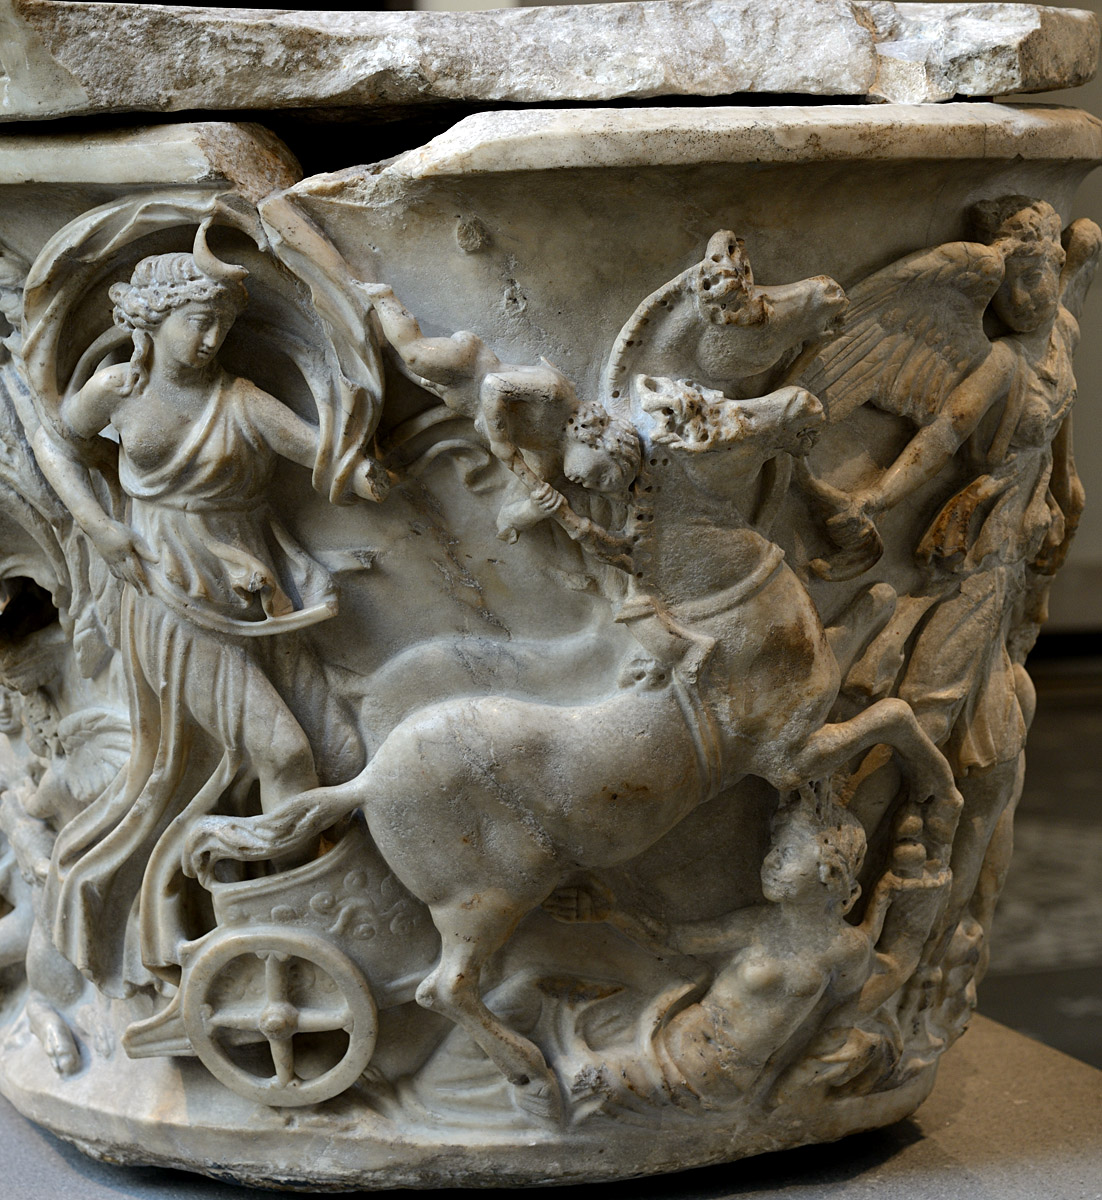 Sarcophagus with a myth of Selene and Endymion. Left end relief. Marble. Early 3rd cent. CE. Inv. No. 47.100.4a. New York, the Metropolitan Museum of Art